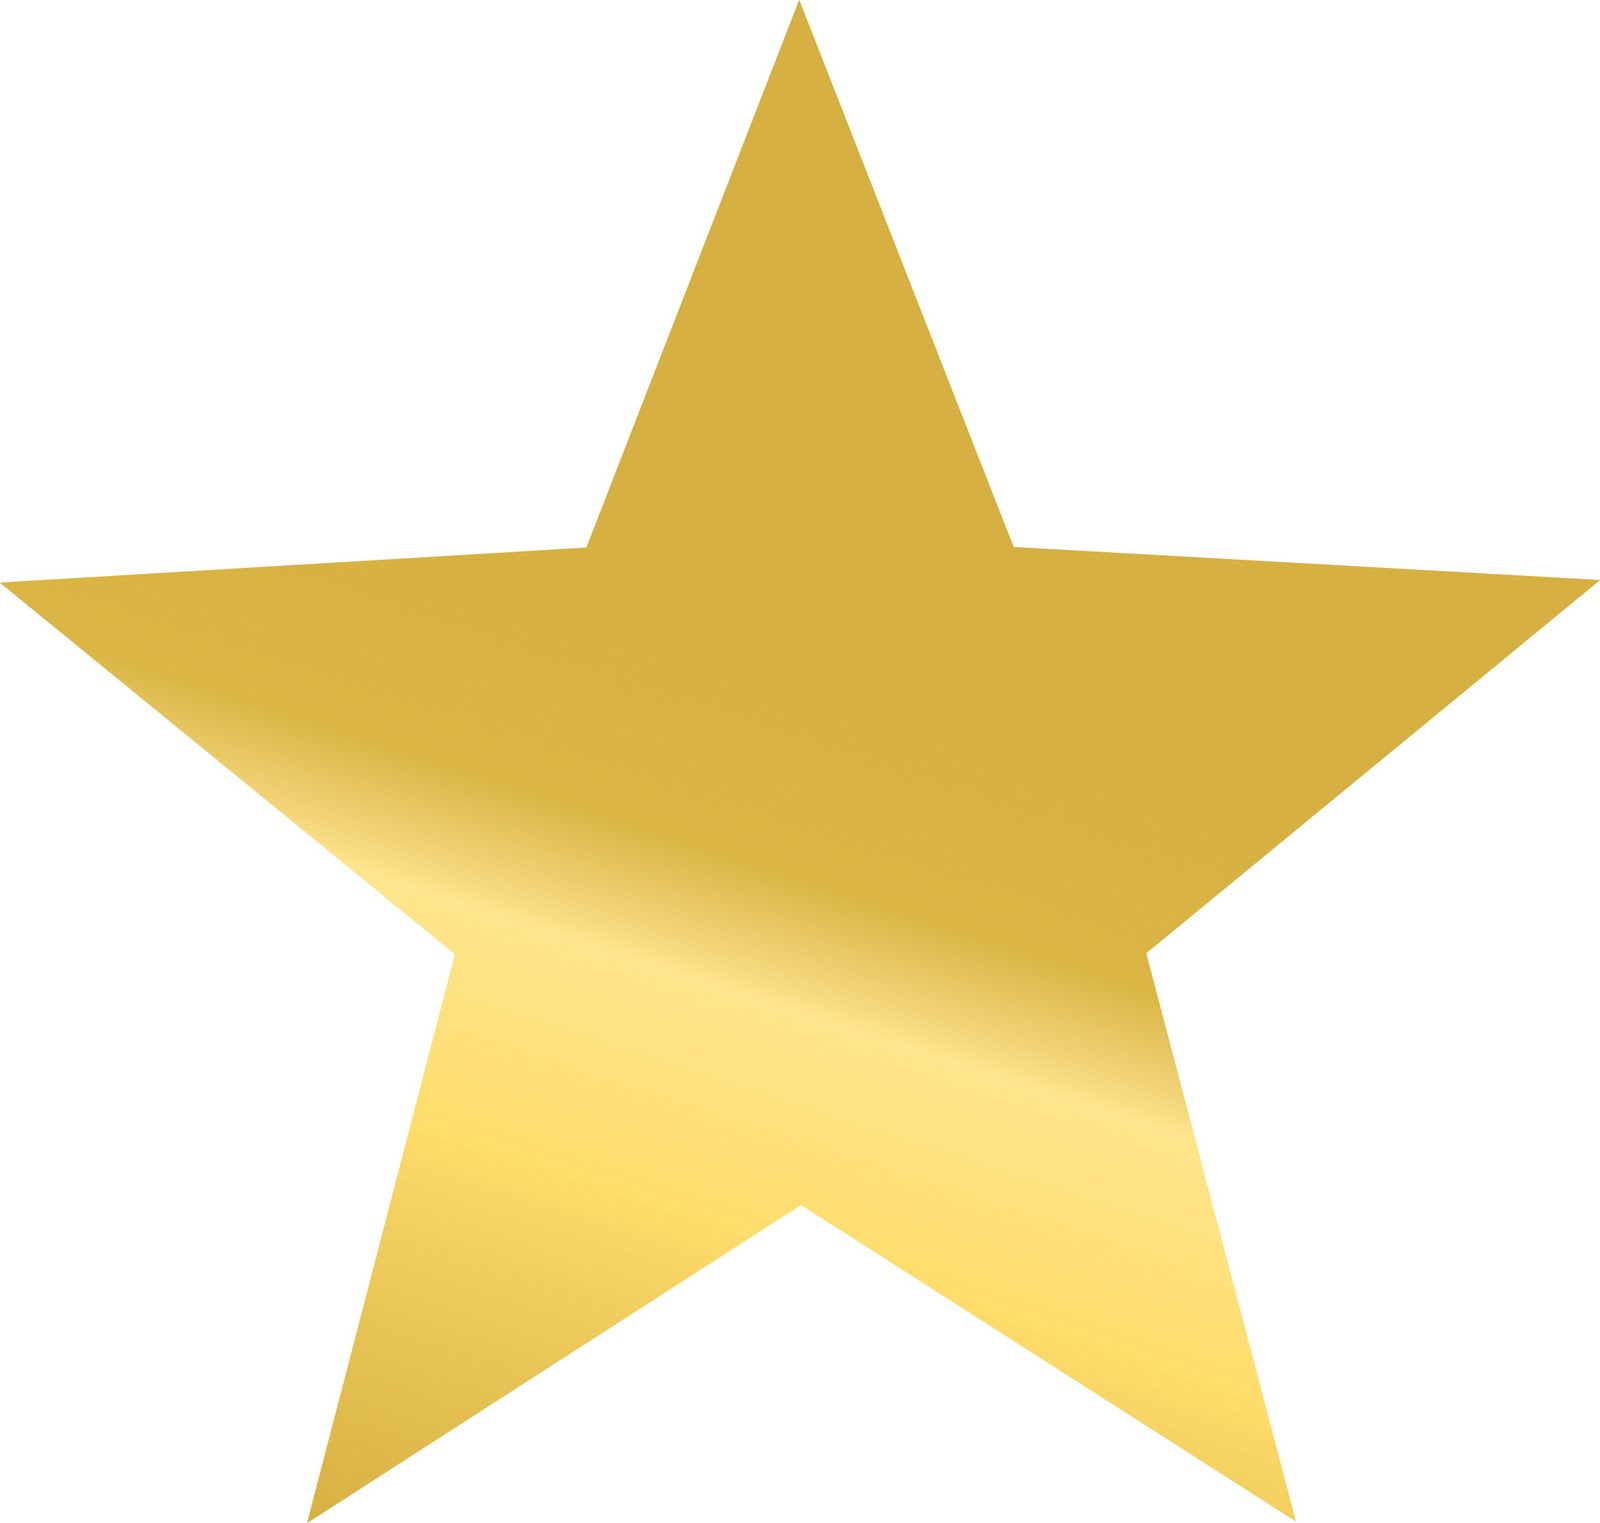 13 Church Row Gold Stars Vector Images - 5 Gold Stars Clip ...